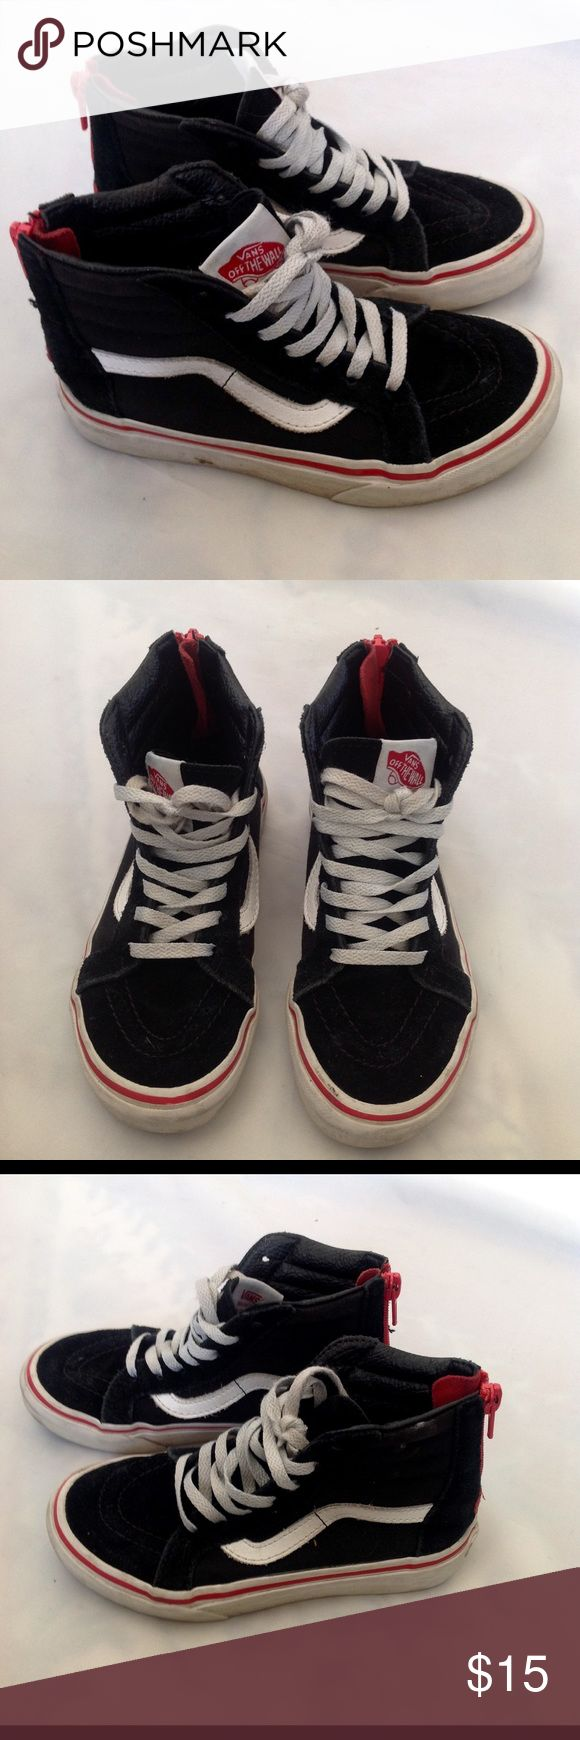 Vans Black Old Skool Hi Tops Suede and Canvas Have back zipper for easy on/off with no untying.  Base of zipper has suede red heart♥️  Youth size 12.5 No rips, holes or tears. Lots of life left! Vans Shoes